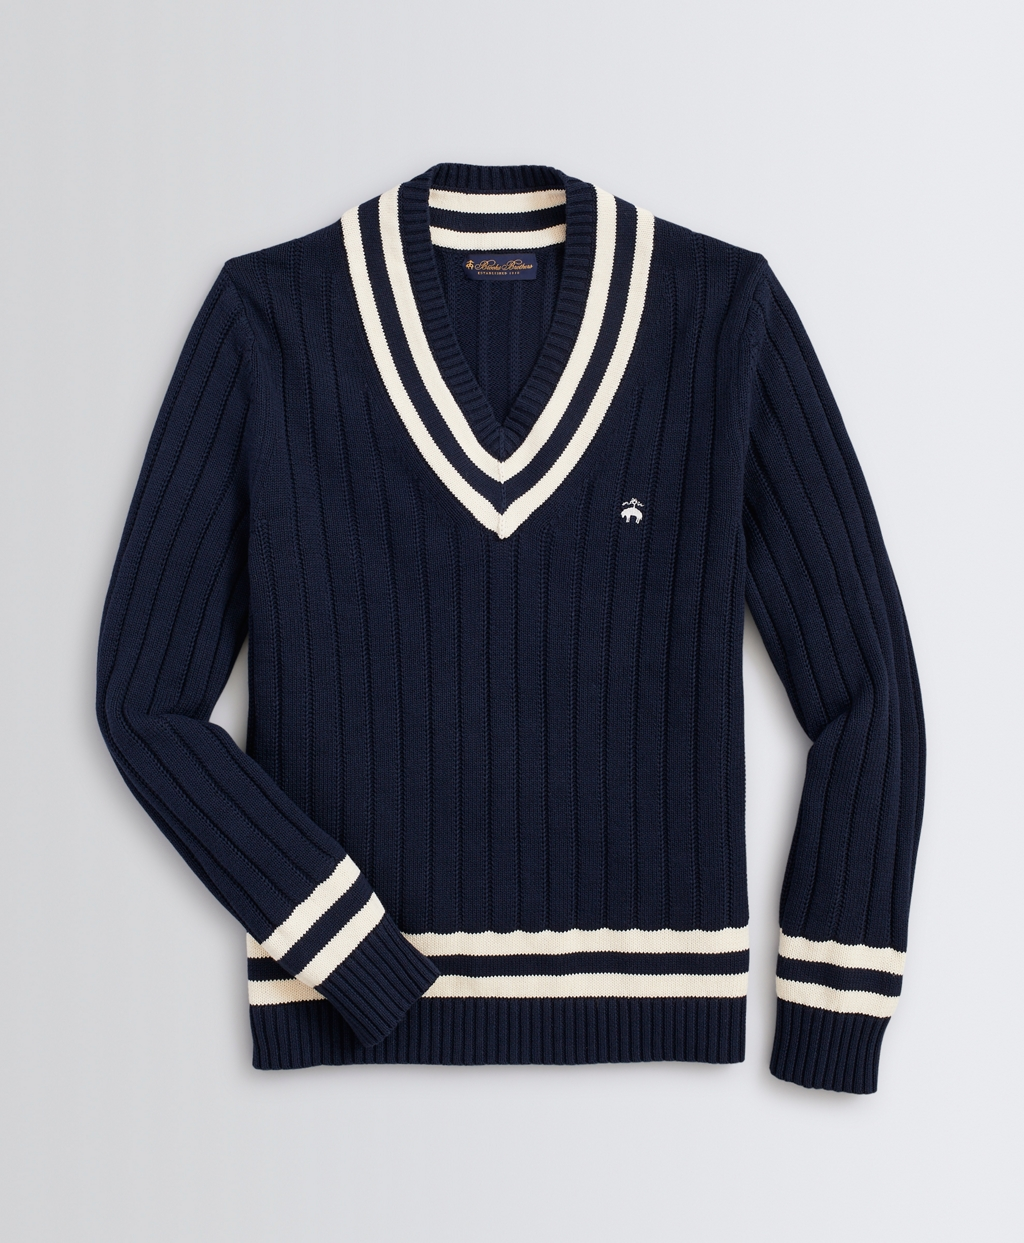 Men's Vintage Sweaters History Brooks Brothers Mens Classic V-Neck Tennis Sweater $128.00 AT vintagedancer.com